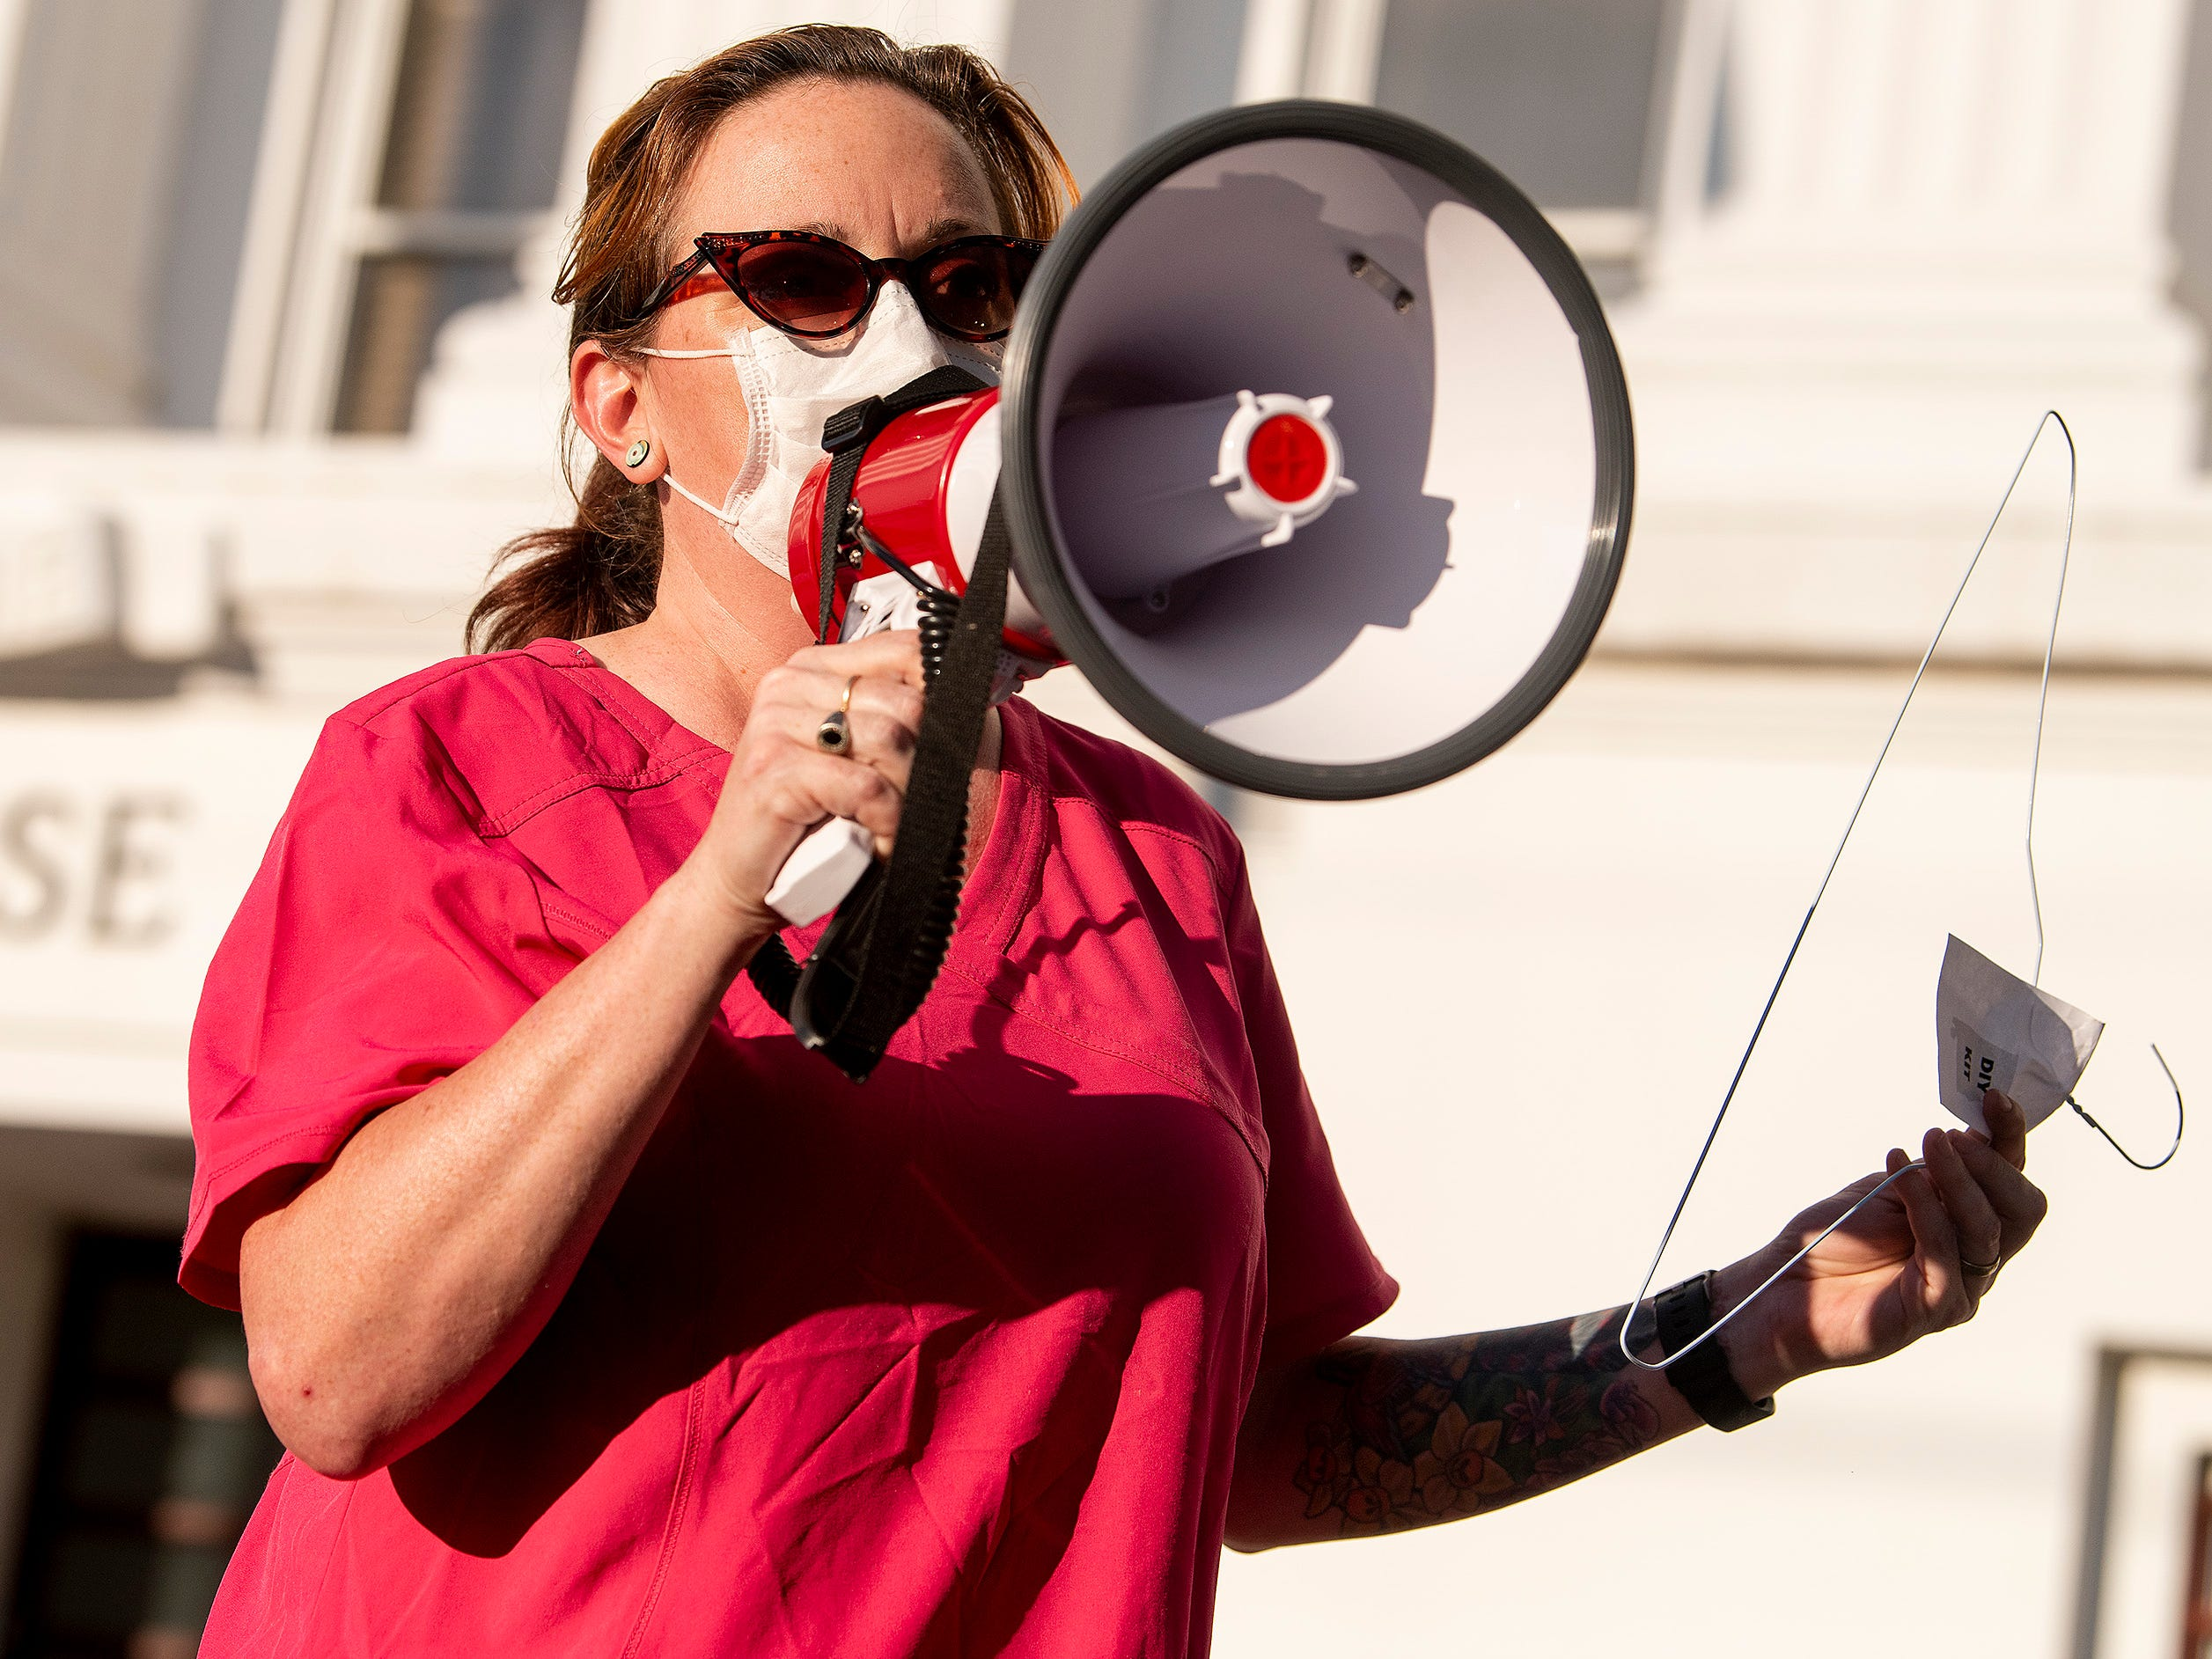 Laura Stiller discusses illegal abortions during a rally against HB314, the near-total ban on abortion bill, outside of the Alabama Statehouse in Montgomery, Ala., on Tuesday May 14, 2019.